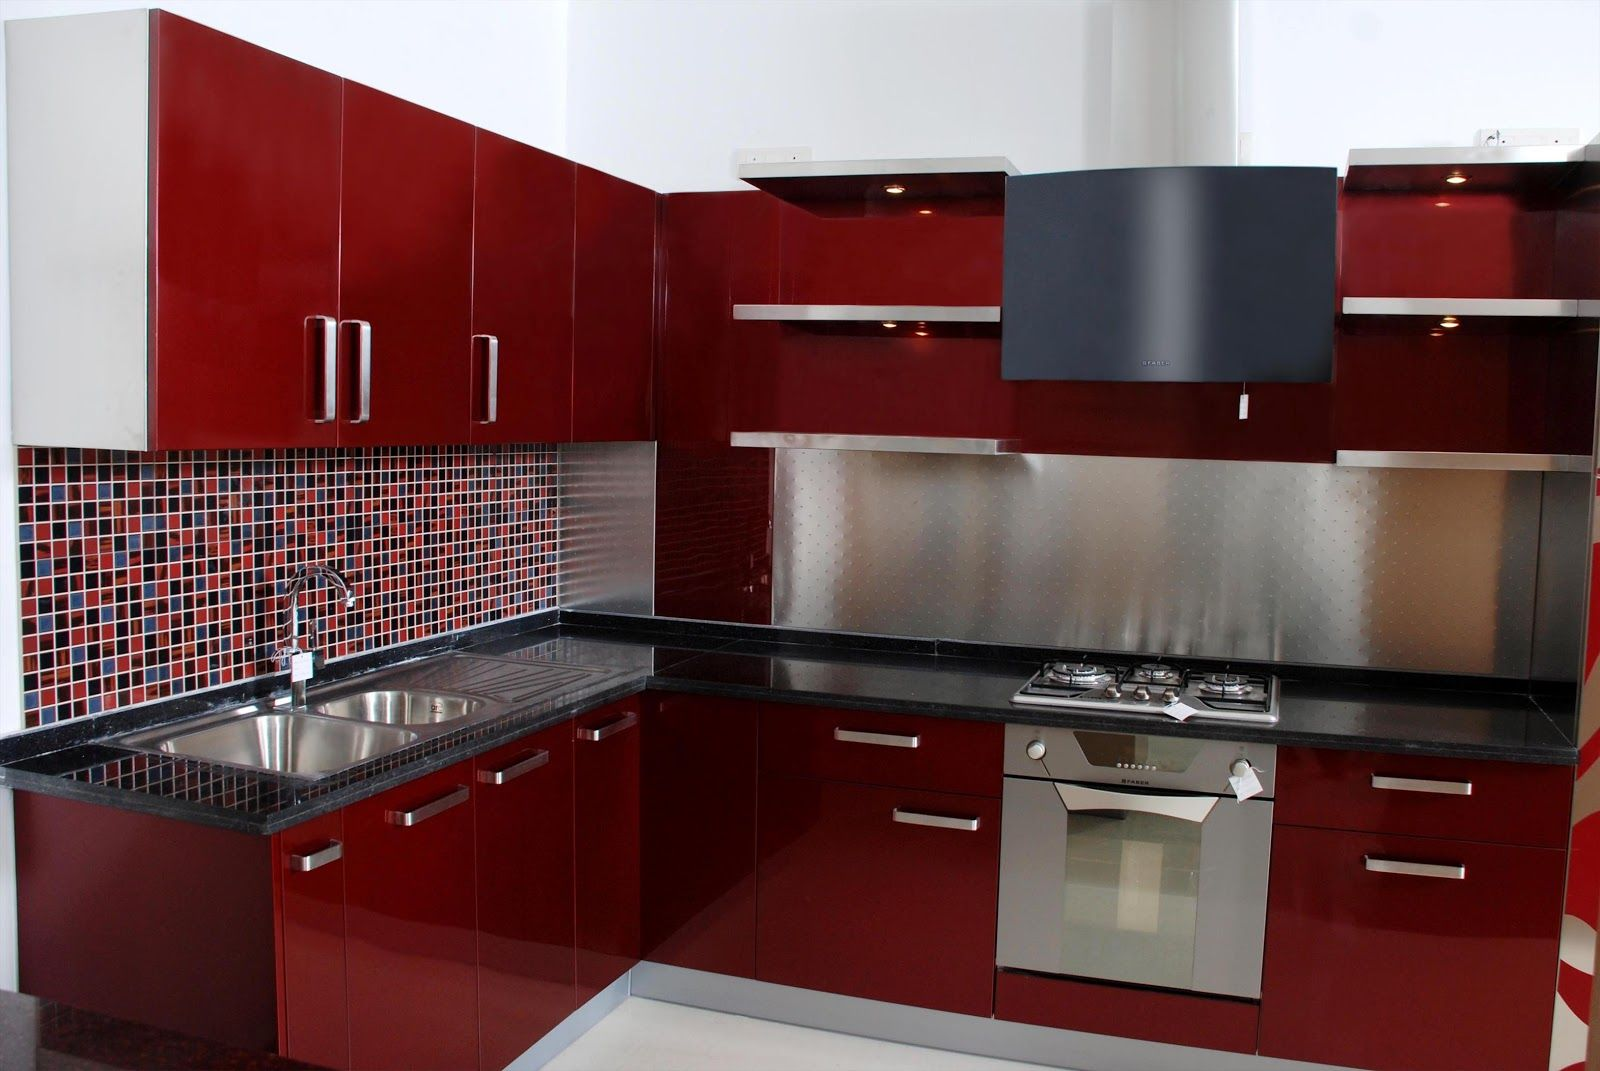 Contemporary L Shaped Kitchen Cabinet Featuring Red Gloss Finish Together  Black Granite Counter Top And Colorful Mosaic Pattern Backsplash As Well As  Double ... Part 57